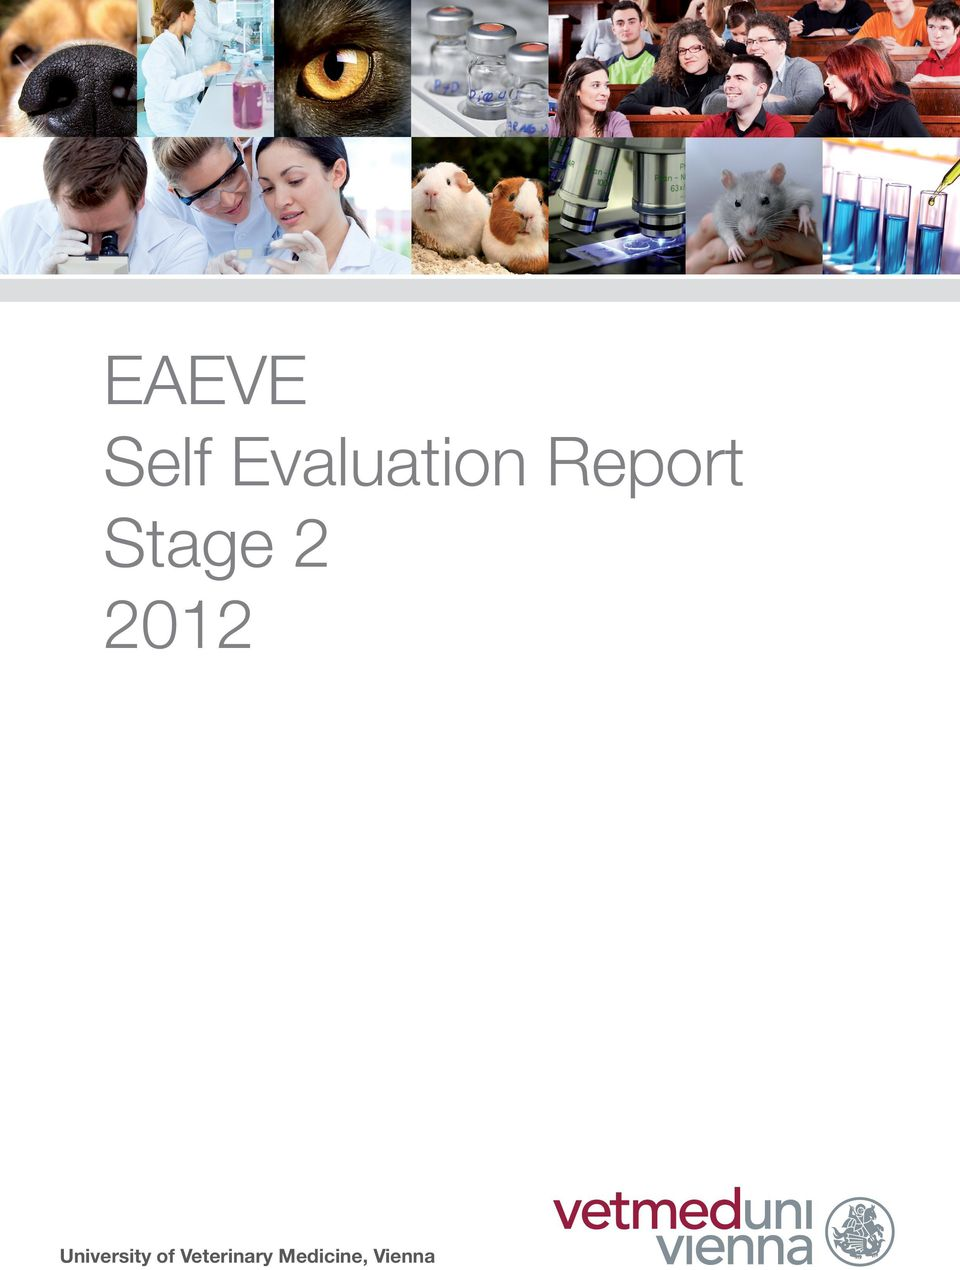 vienna) Self Evaluation Report Stage 2 2012